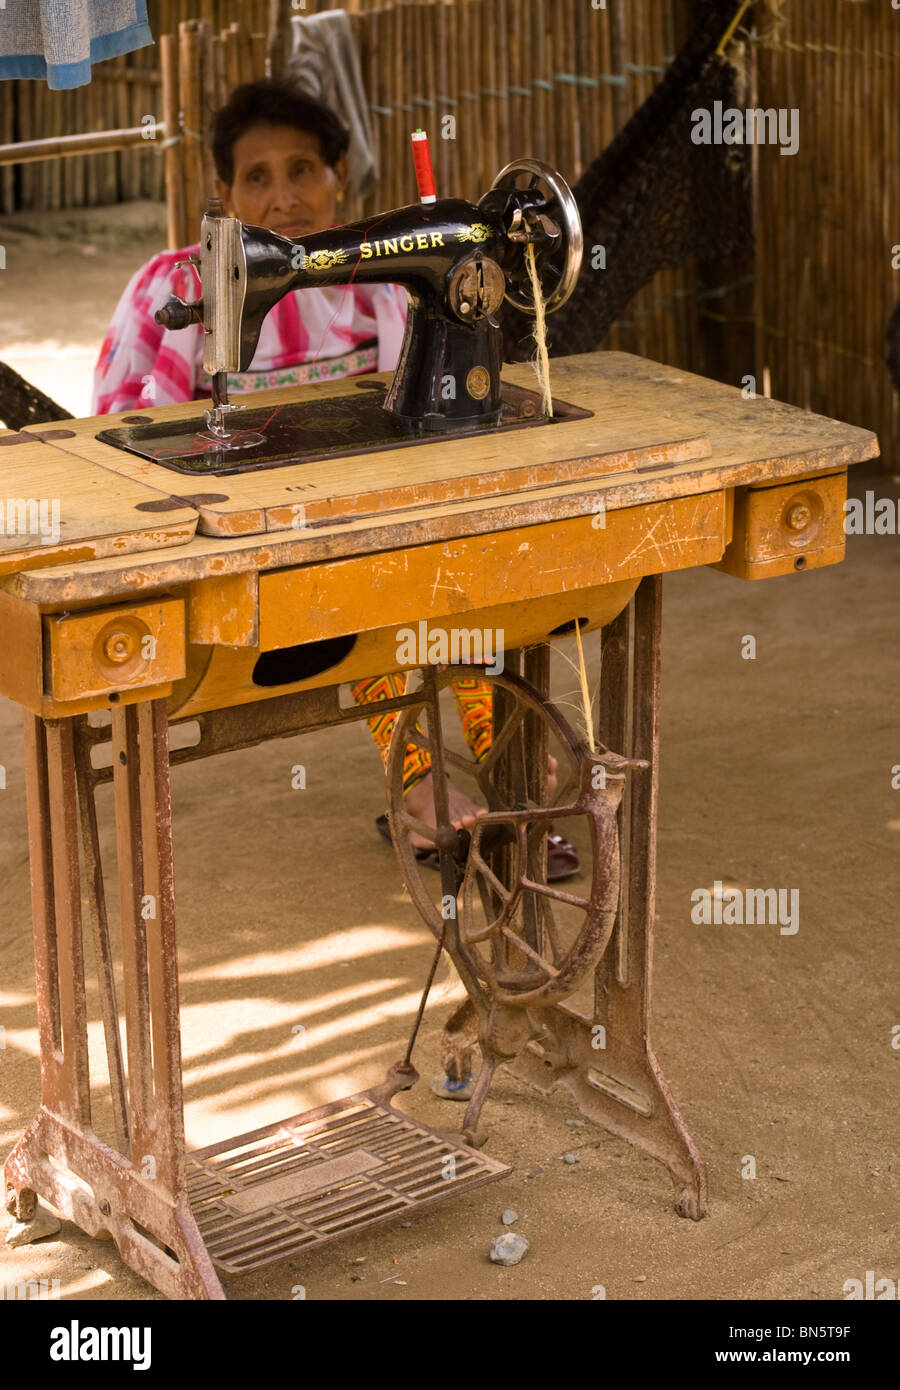 Traditional Singer Treadle Sewing Machine Stock Photos